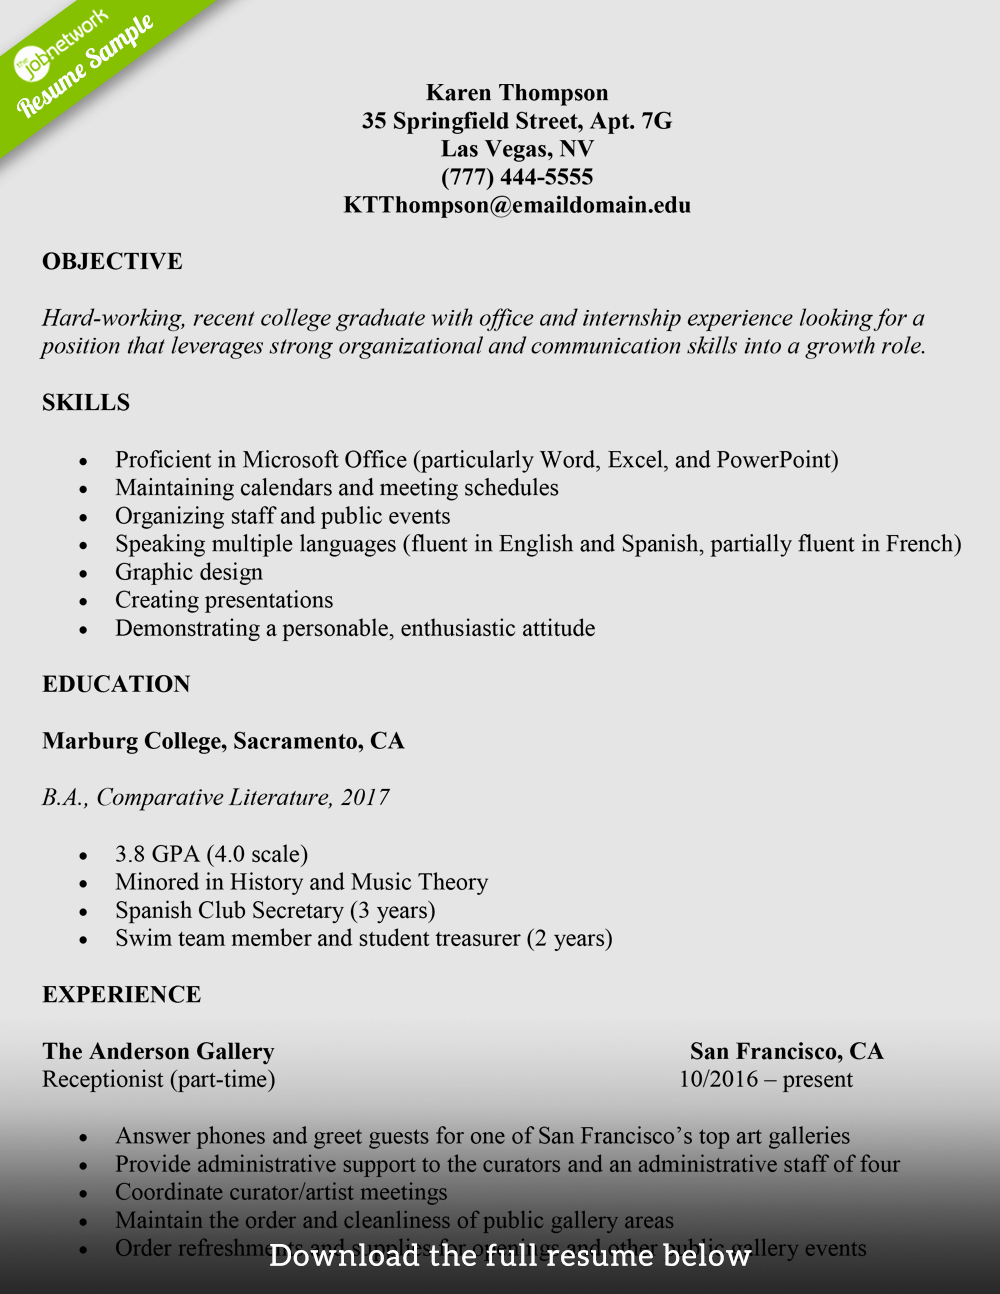 Cv Samples for Students Awesome How to Write A College Student Resume with Examples